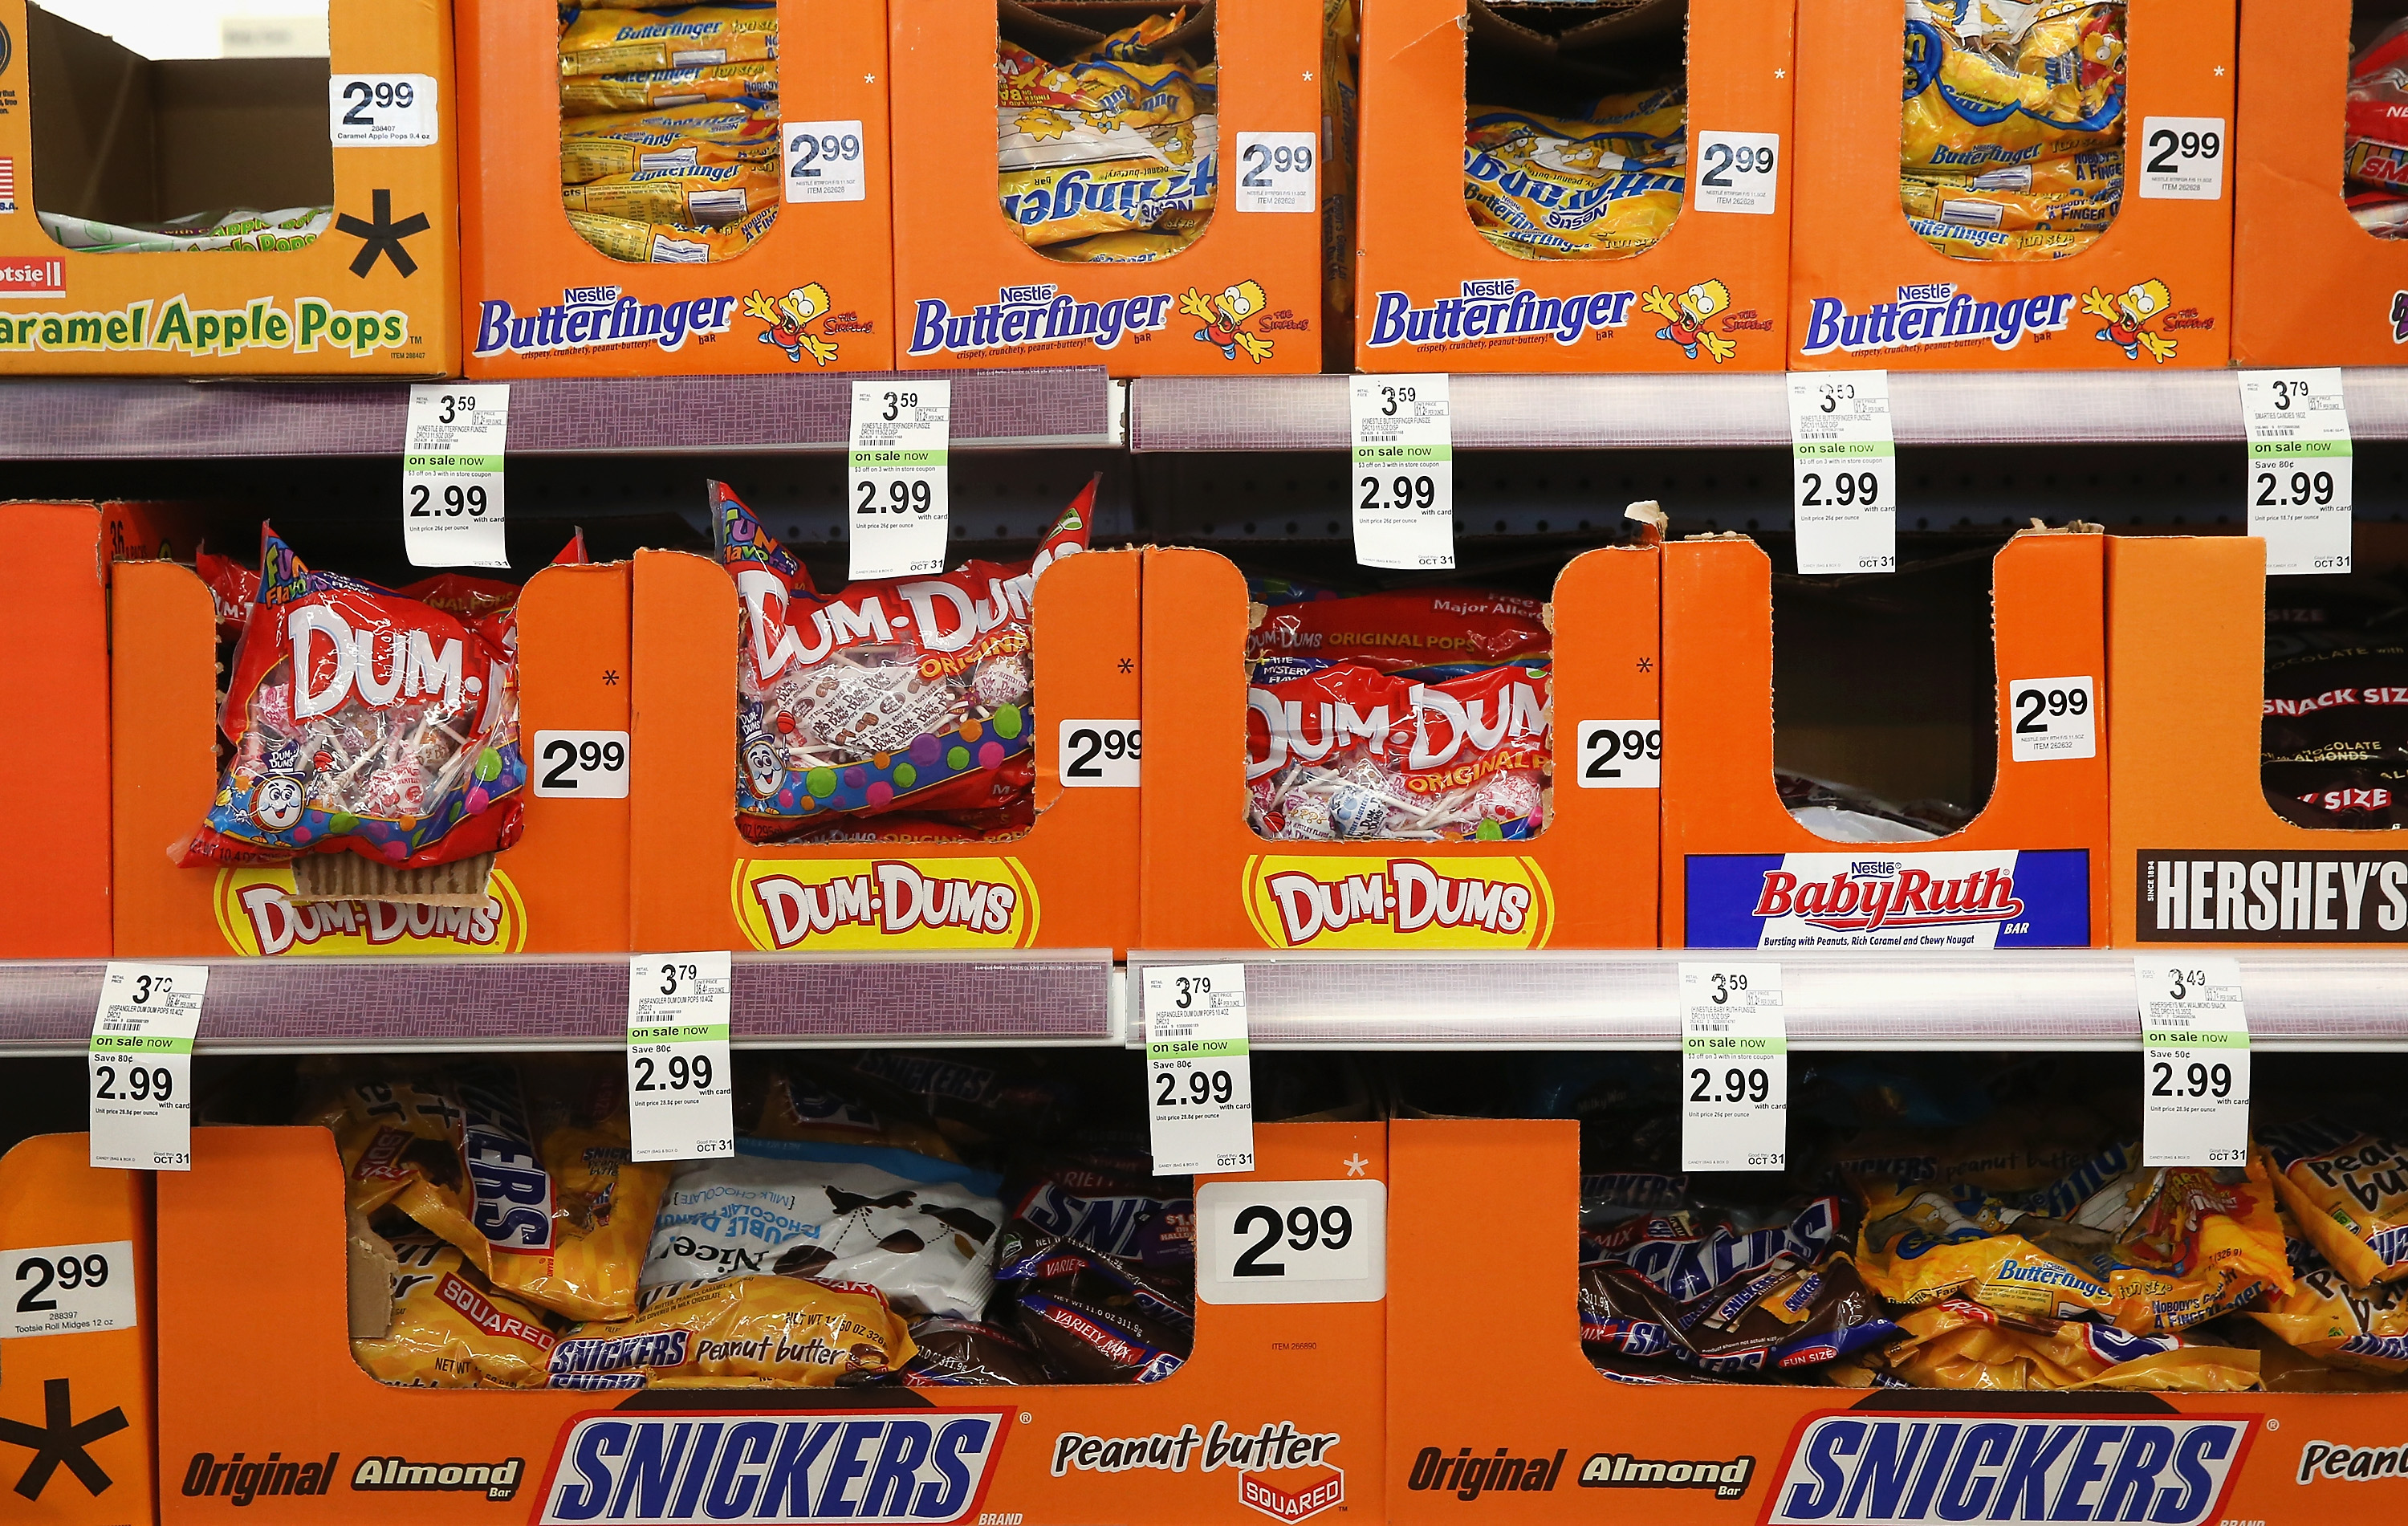 ready for halloween candy? walgreens has you covered.